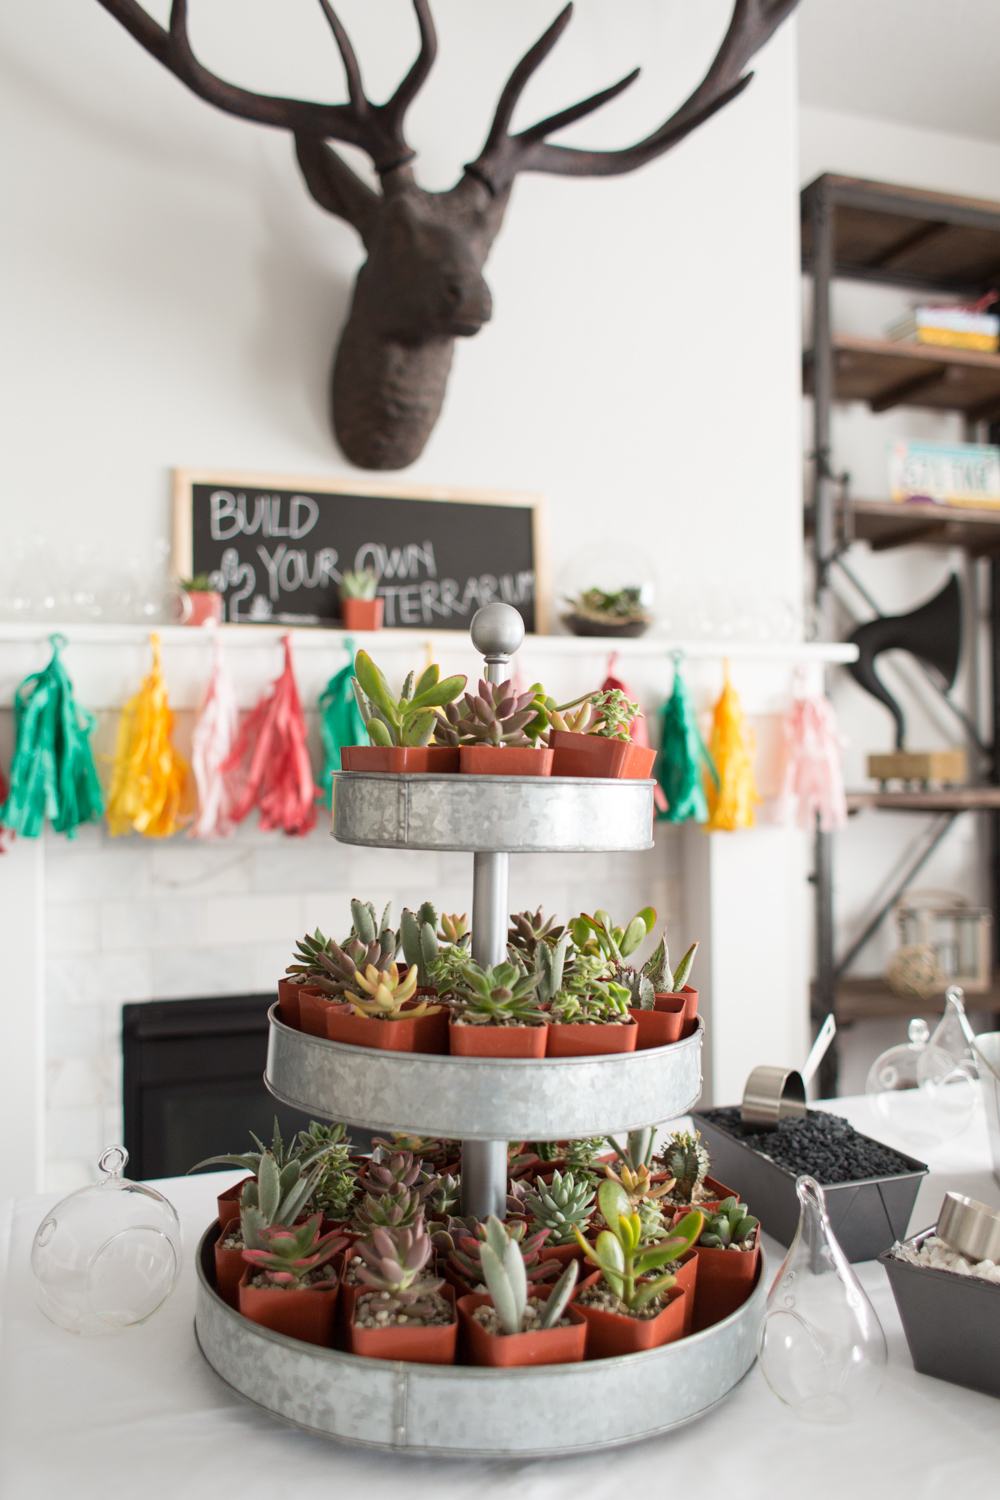 Build your own terrarium cactus party stations